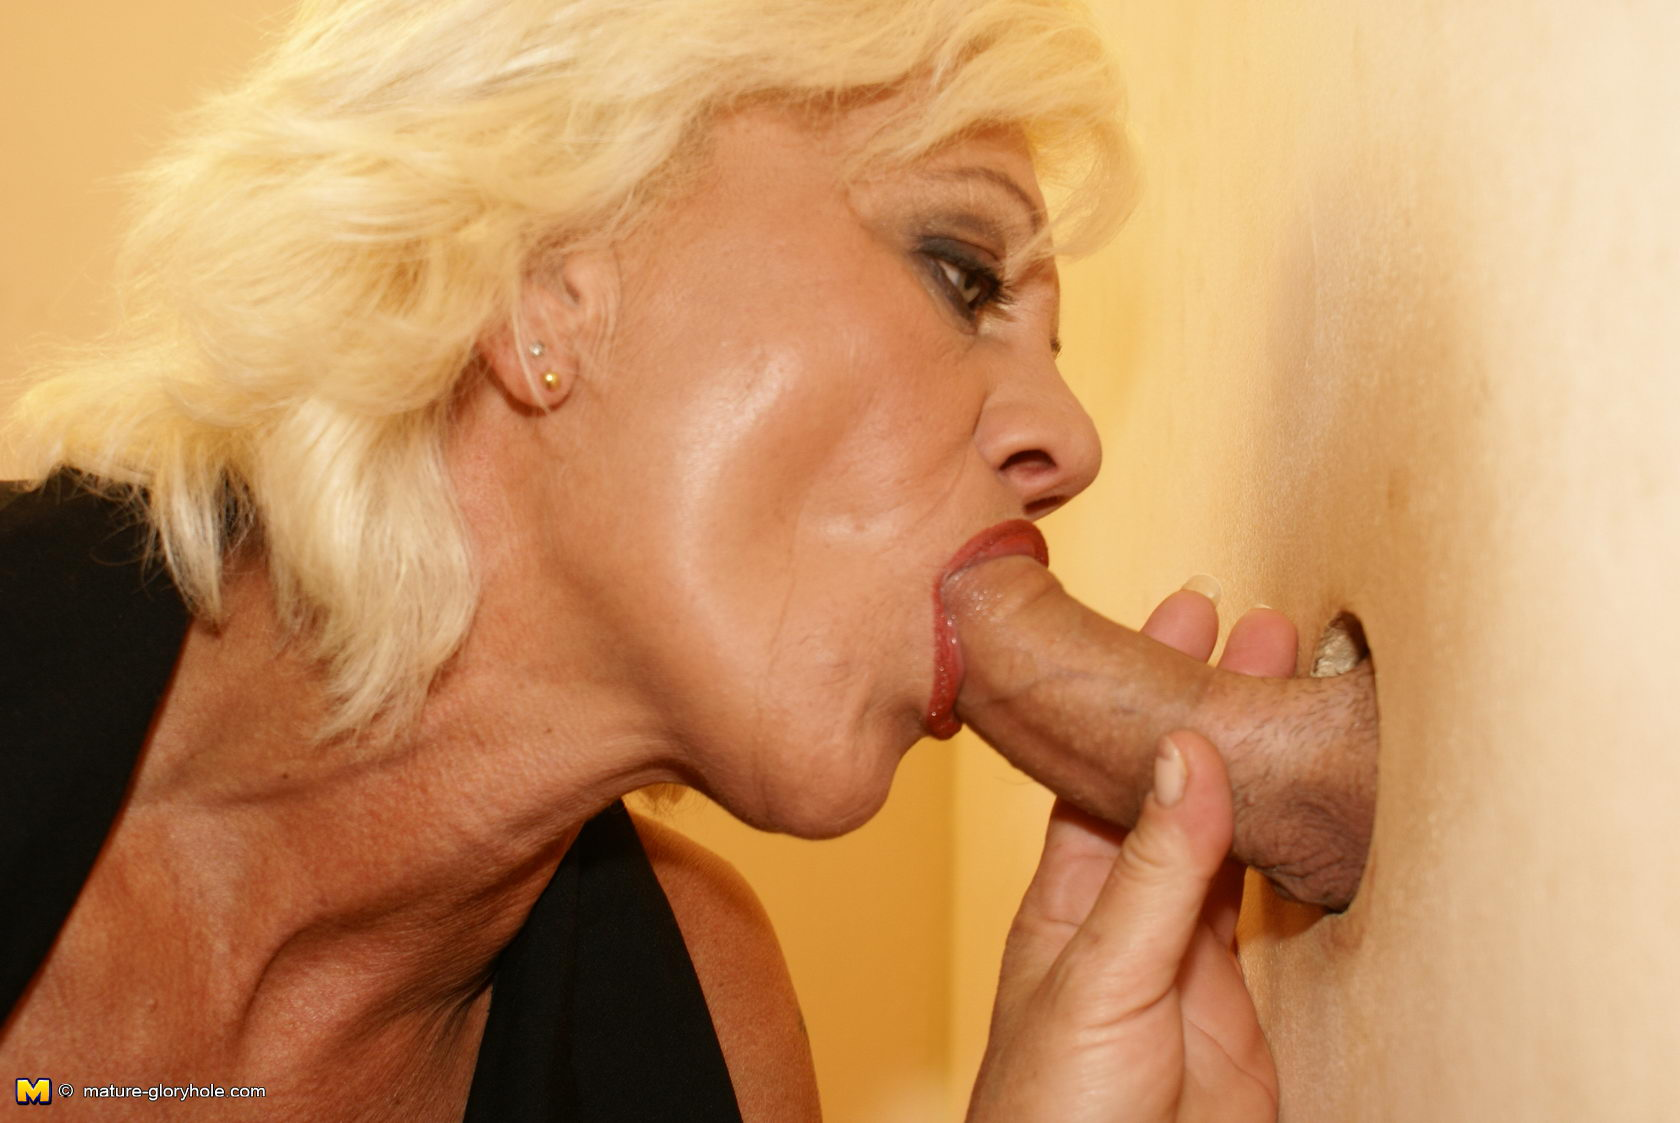 Messy mature glory hole blowjobs